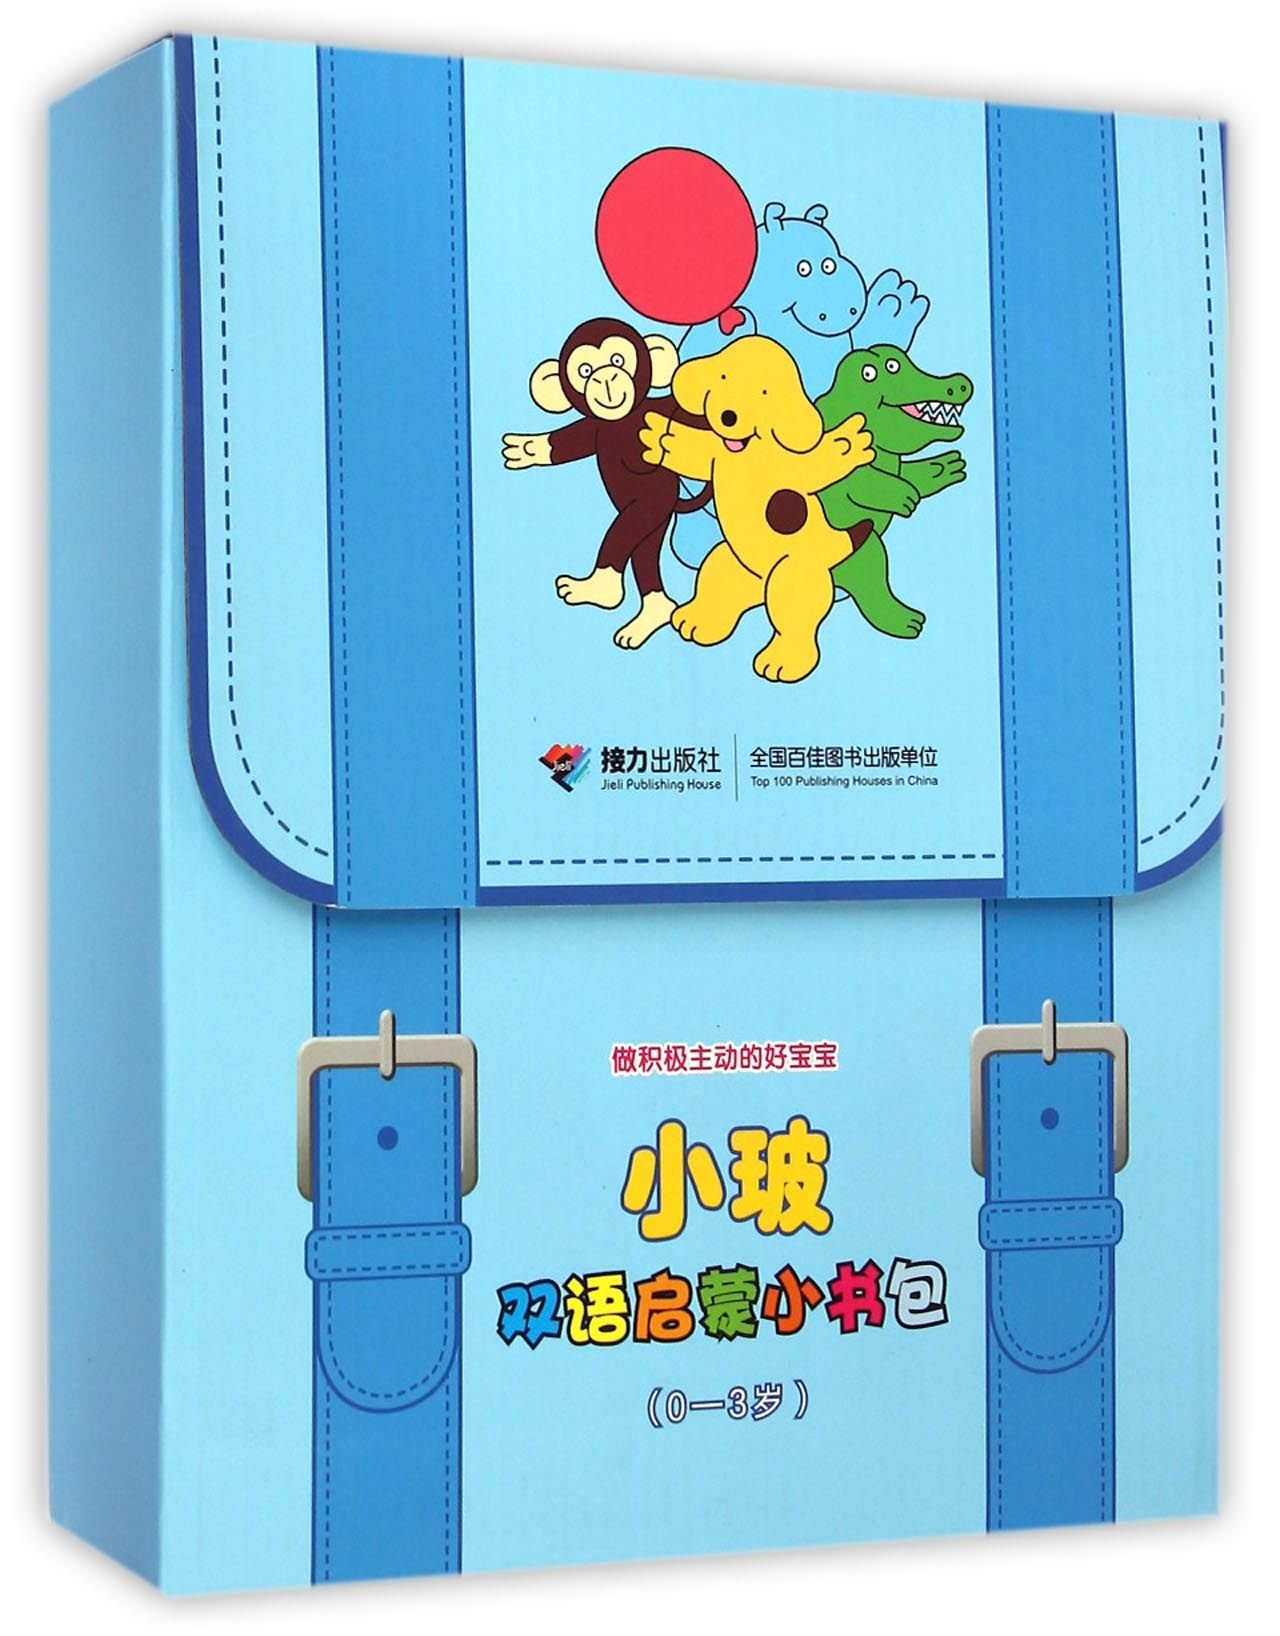 Download Xiao Bo Bilingual Enlightenment School Bags (8 Volumes for 0-3 Year Olds) (English and Chinese Edition) pdf epub